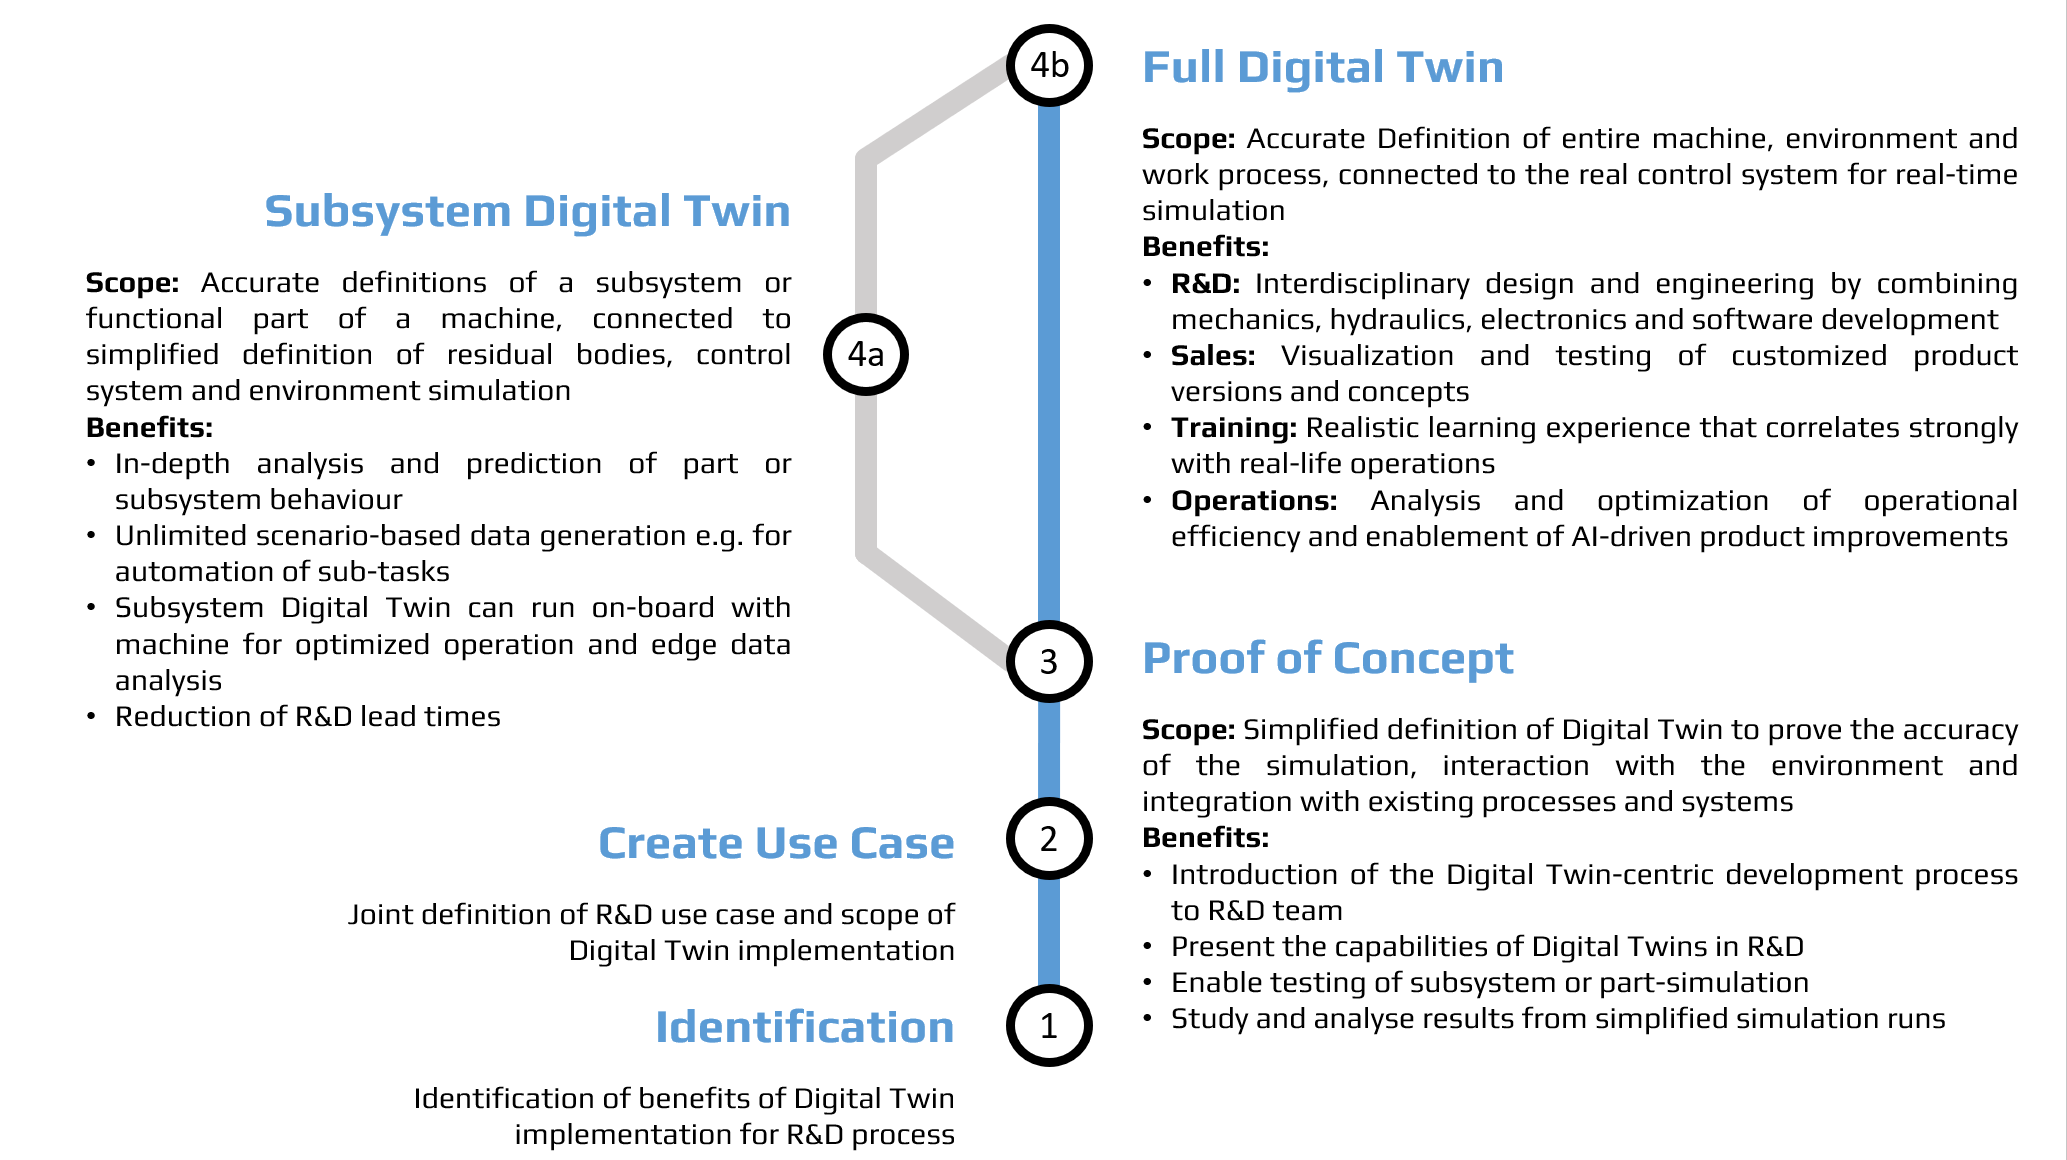 The process of Digital Twin implementation: from need identification to a full-scale Digital Twin